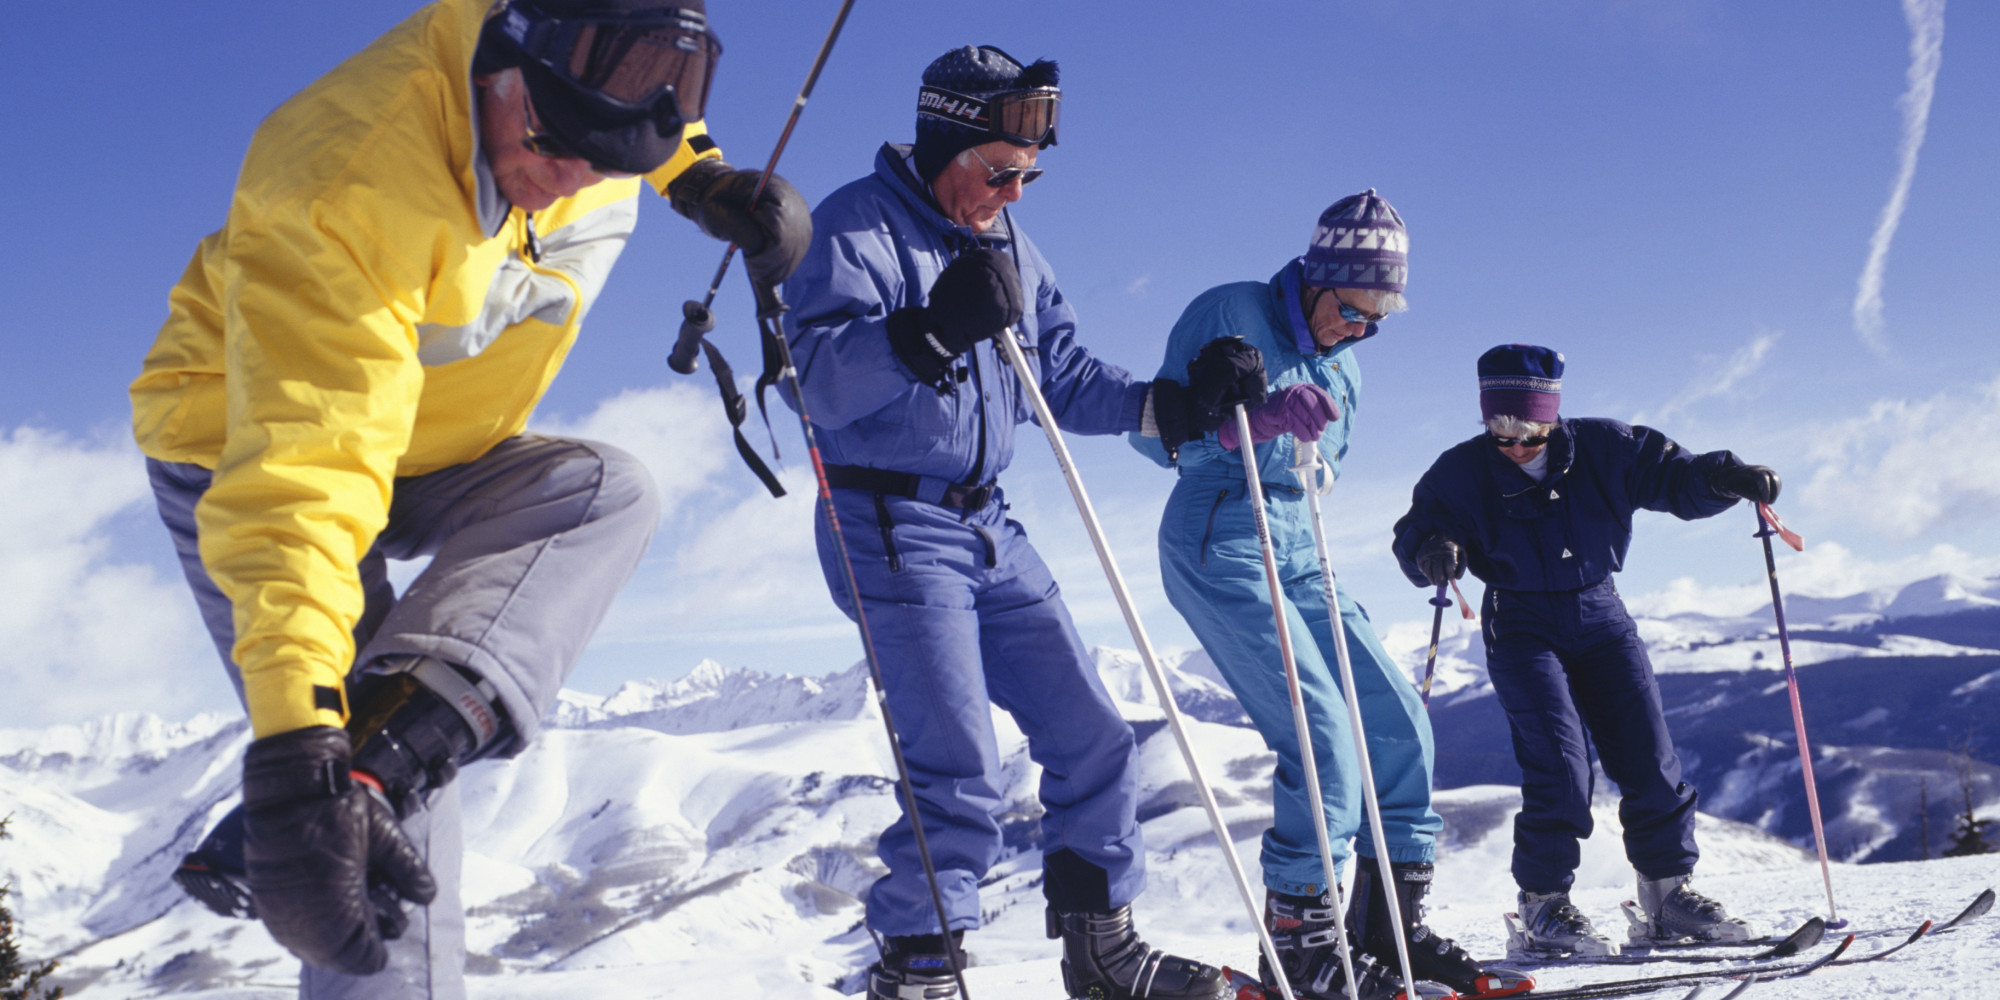 Four elderly people preparing to ski